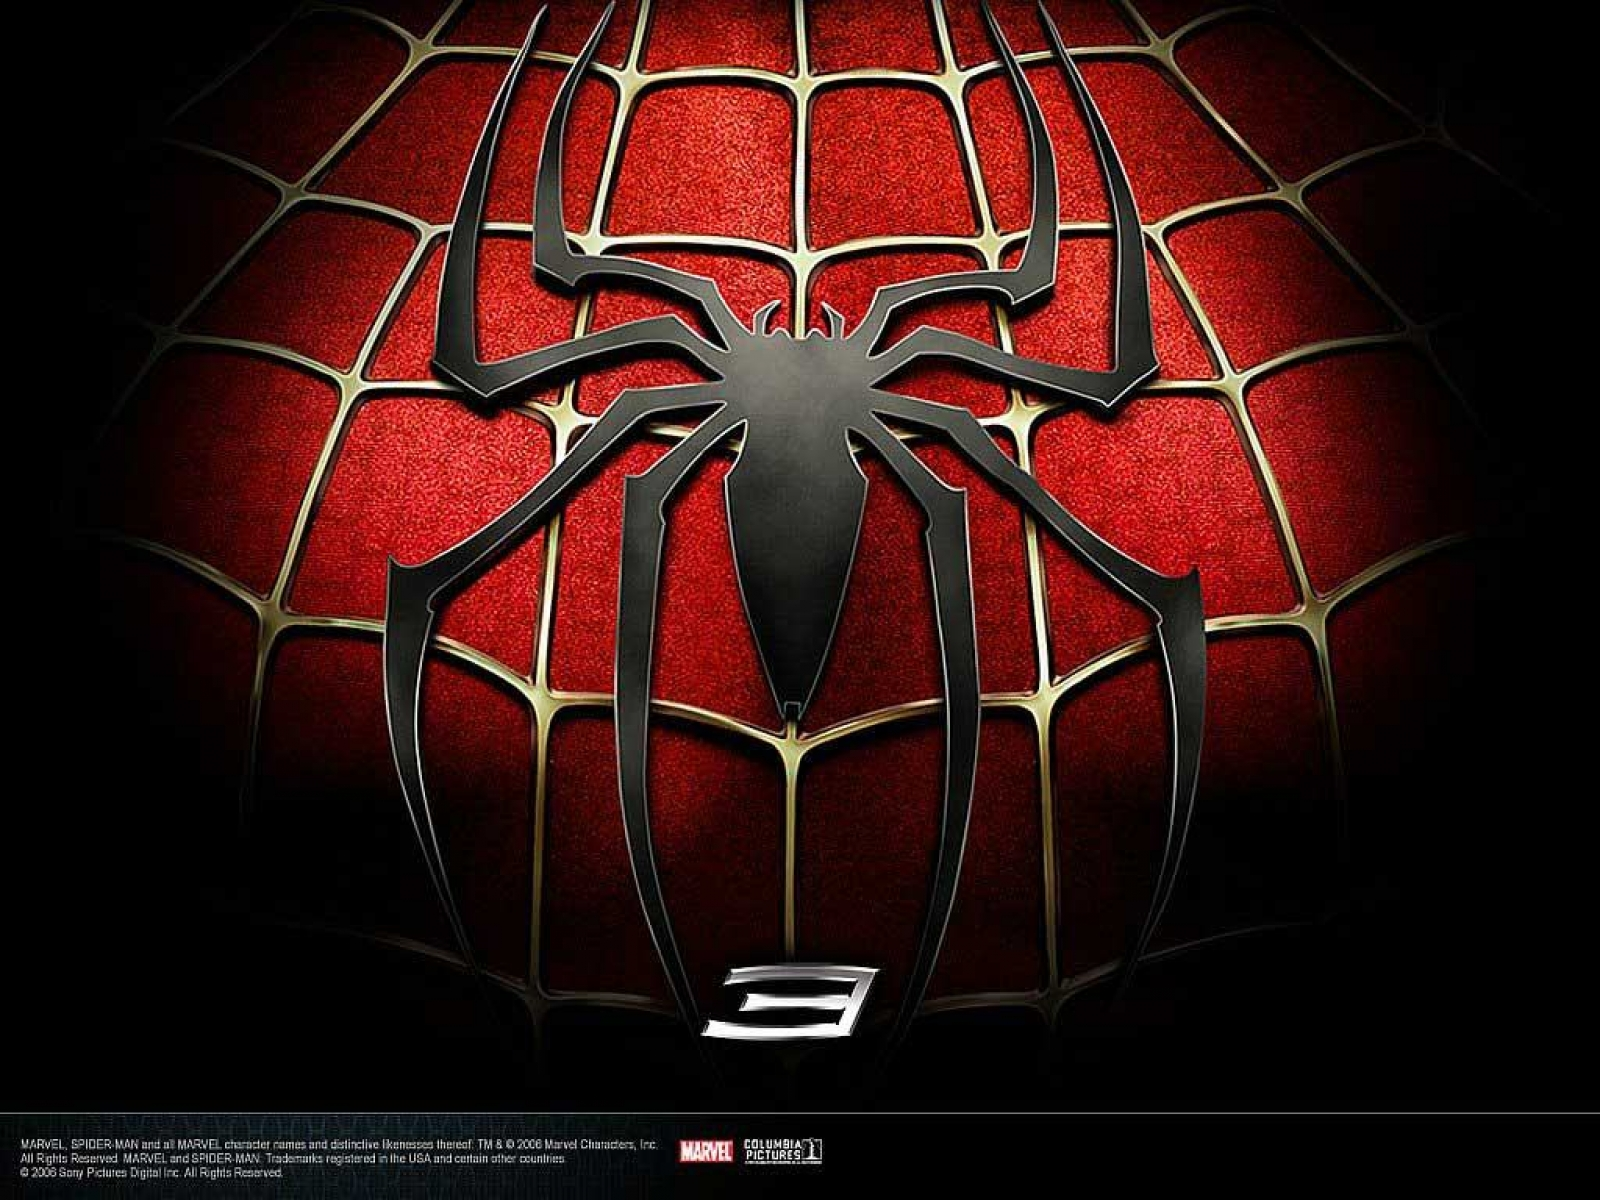 Wallpapers Backgrounds   Download Spiderman Hd Wallpapers Logo 1600x1200